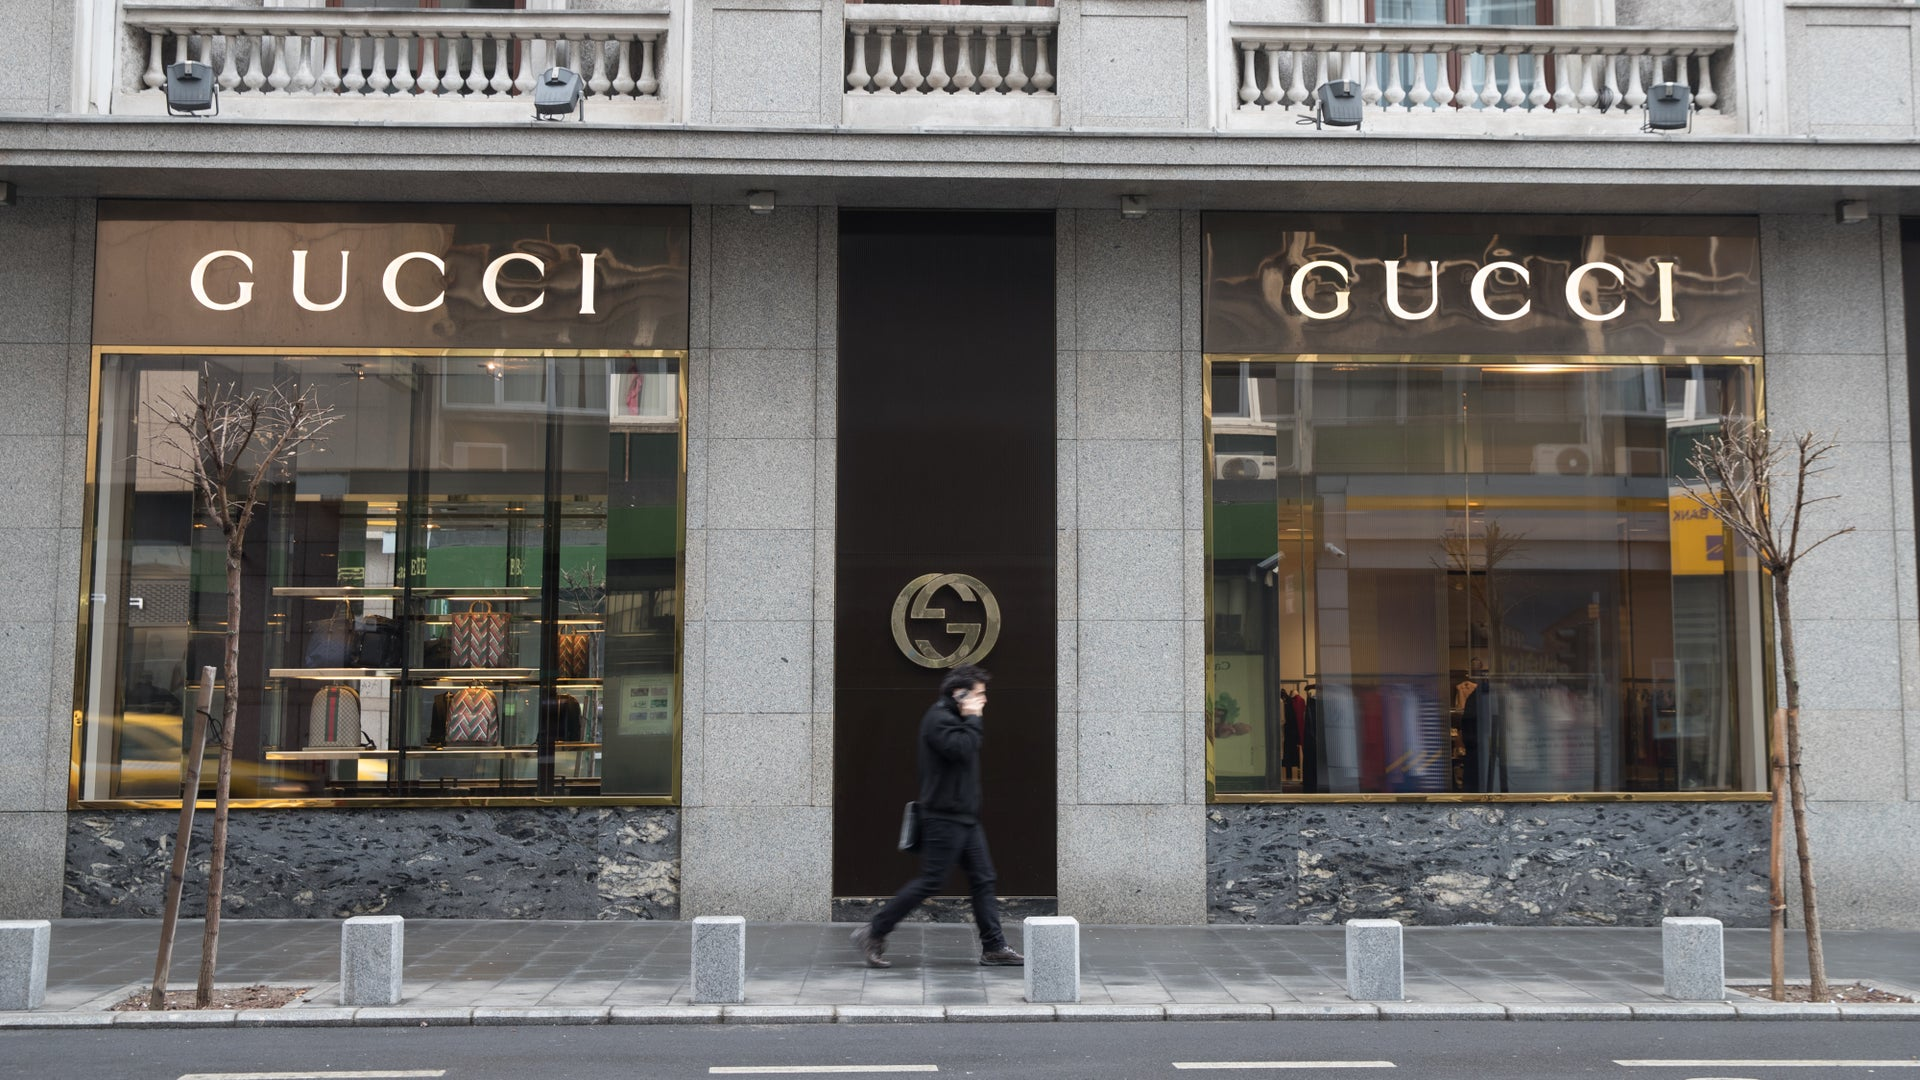 Gucci Gets Called Out for Making Light of Mass Incarceration